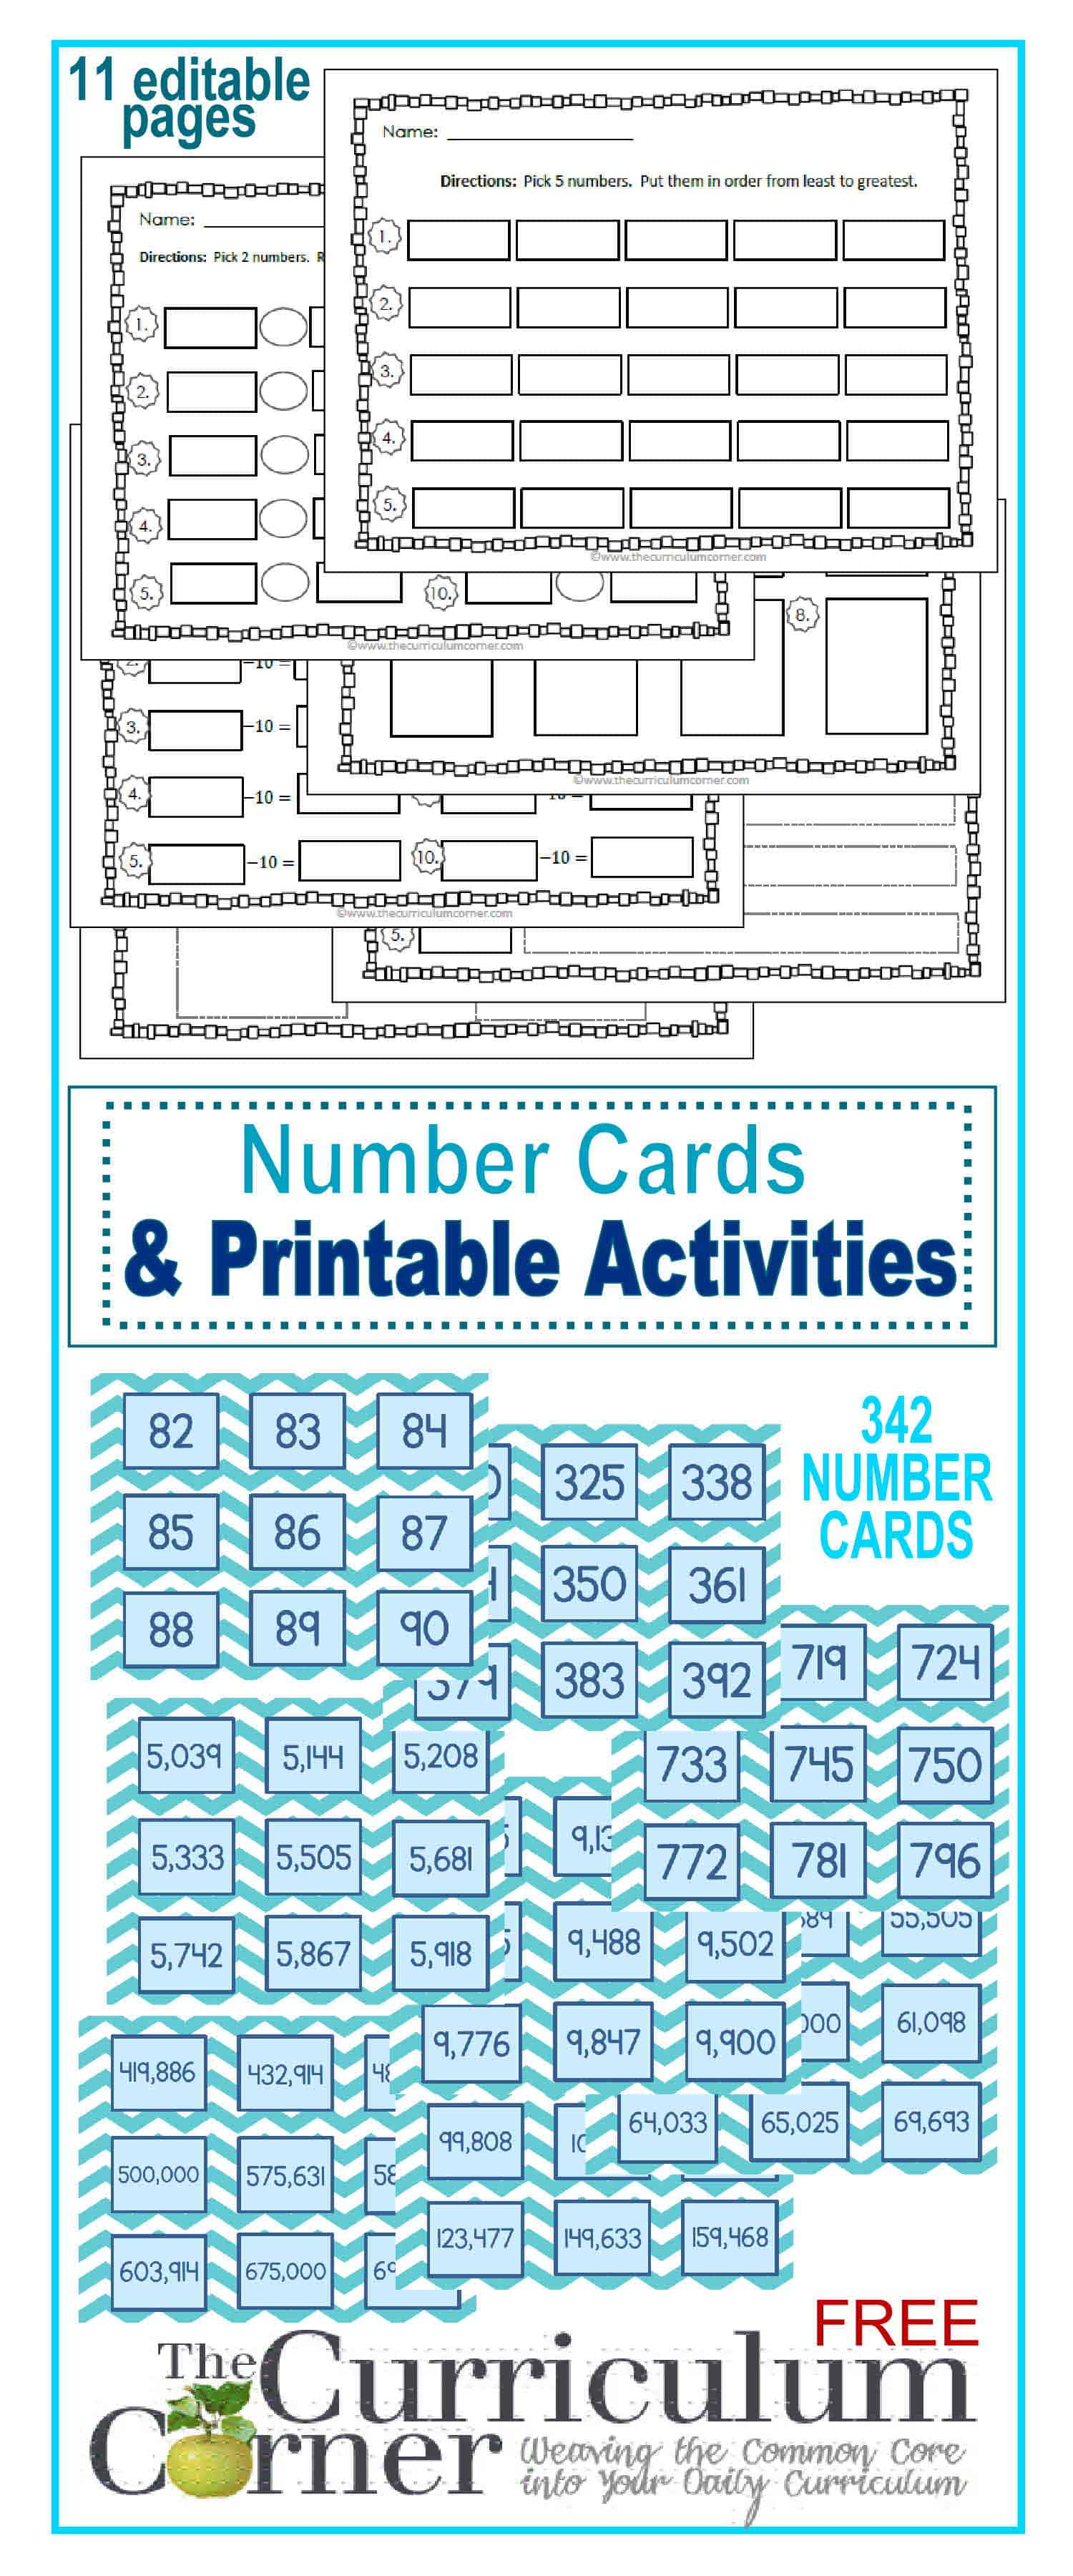 Number Cards & Printable Activities - The Curriculum Corner 123